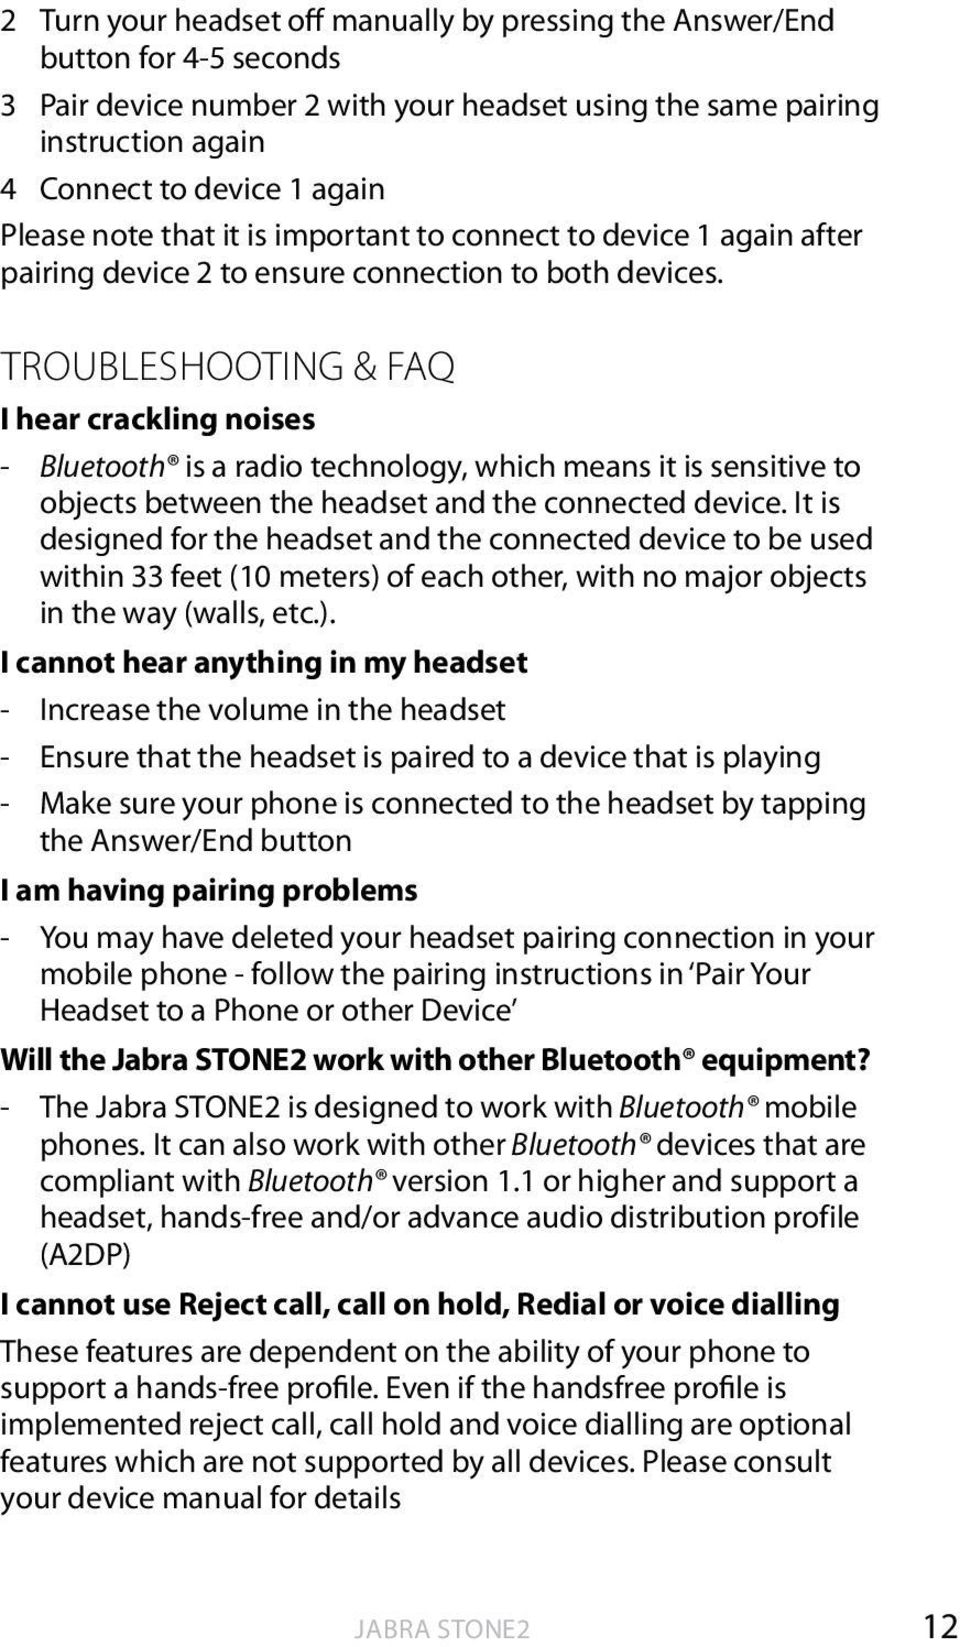 english TROUBLESHOOTING & FAQ I hear crackling noises - Bluetooth is a radio technology, which means it is sensitive to objects between the headset and the connected device.